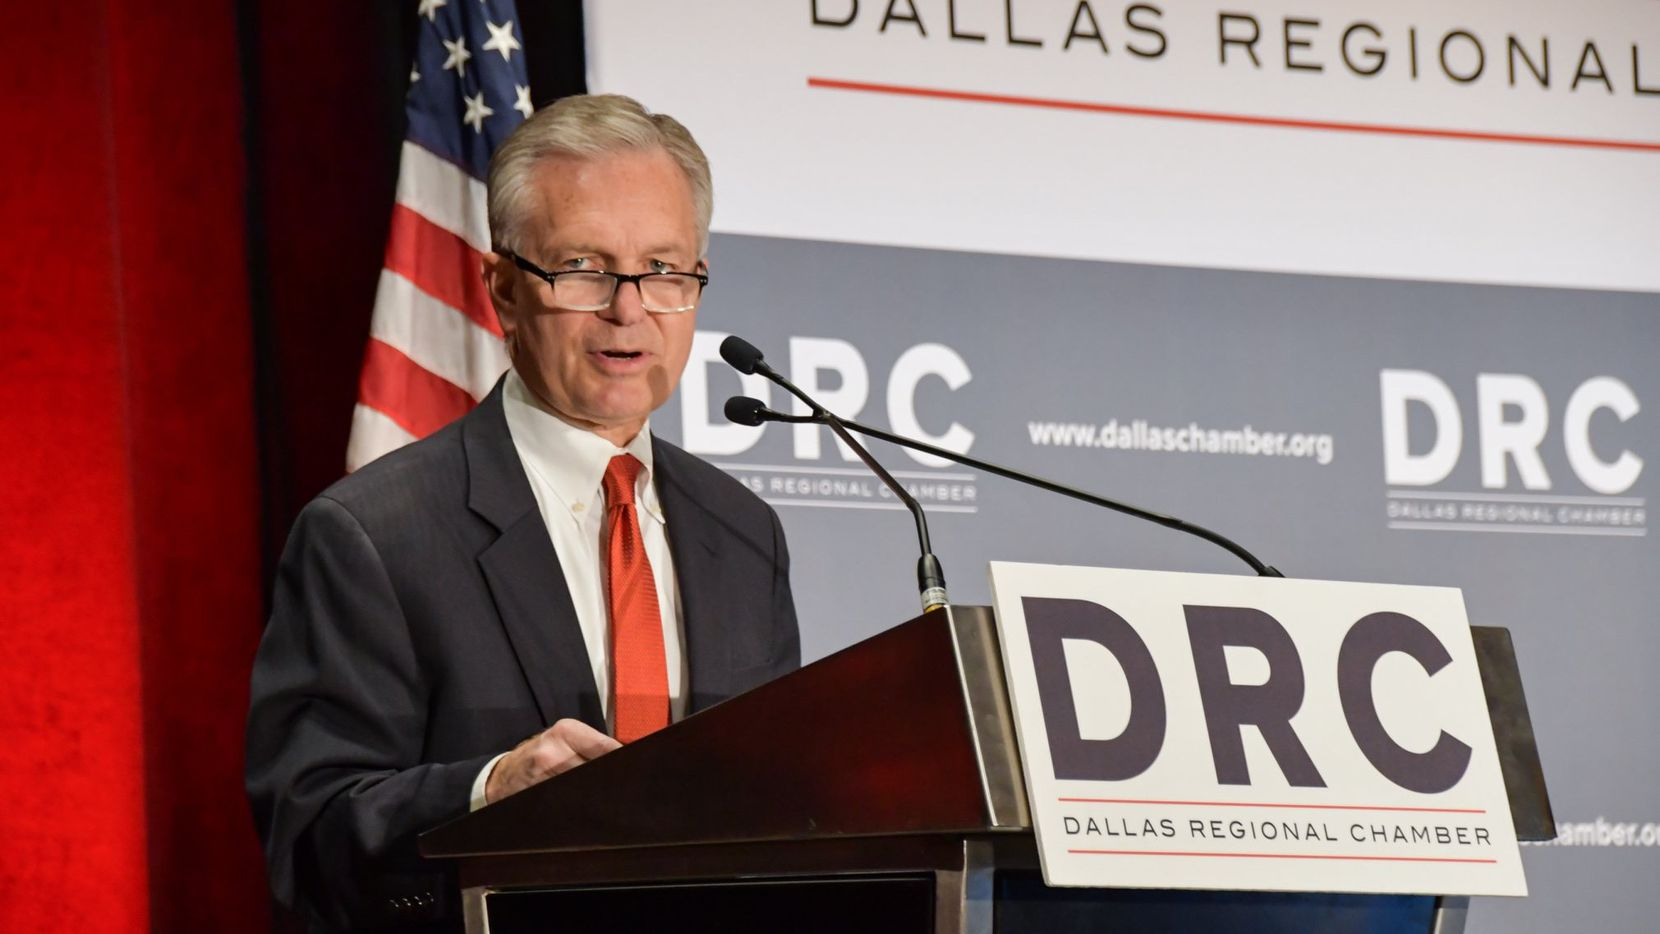 Dale Petroskey, president and CEO of the Dallas Regional Chamber, believes we are equipped to handle challenges as the area grows.